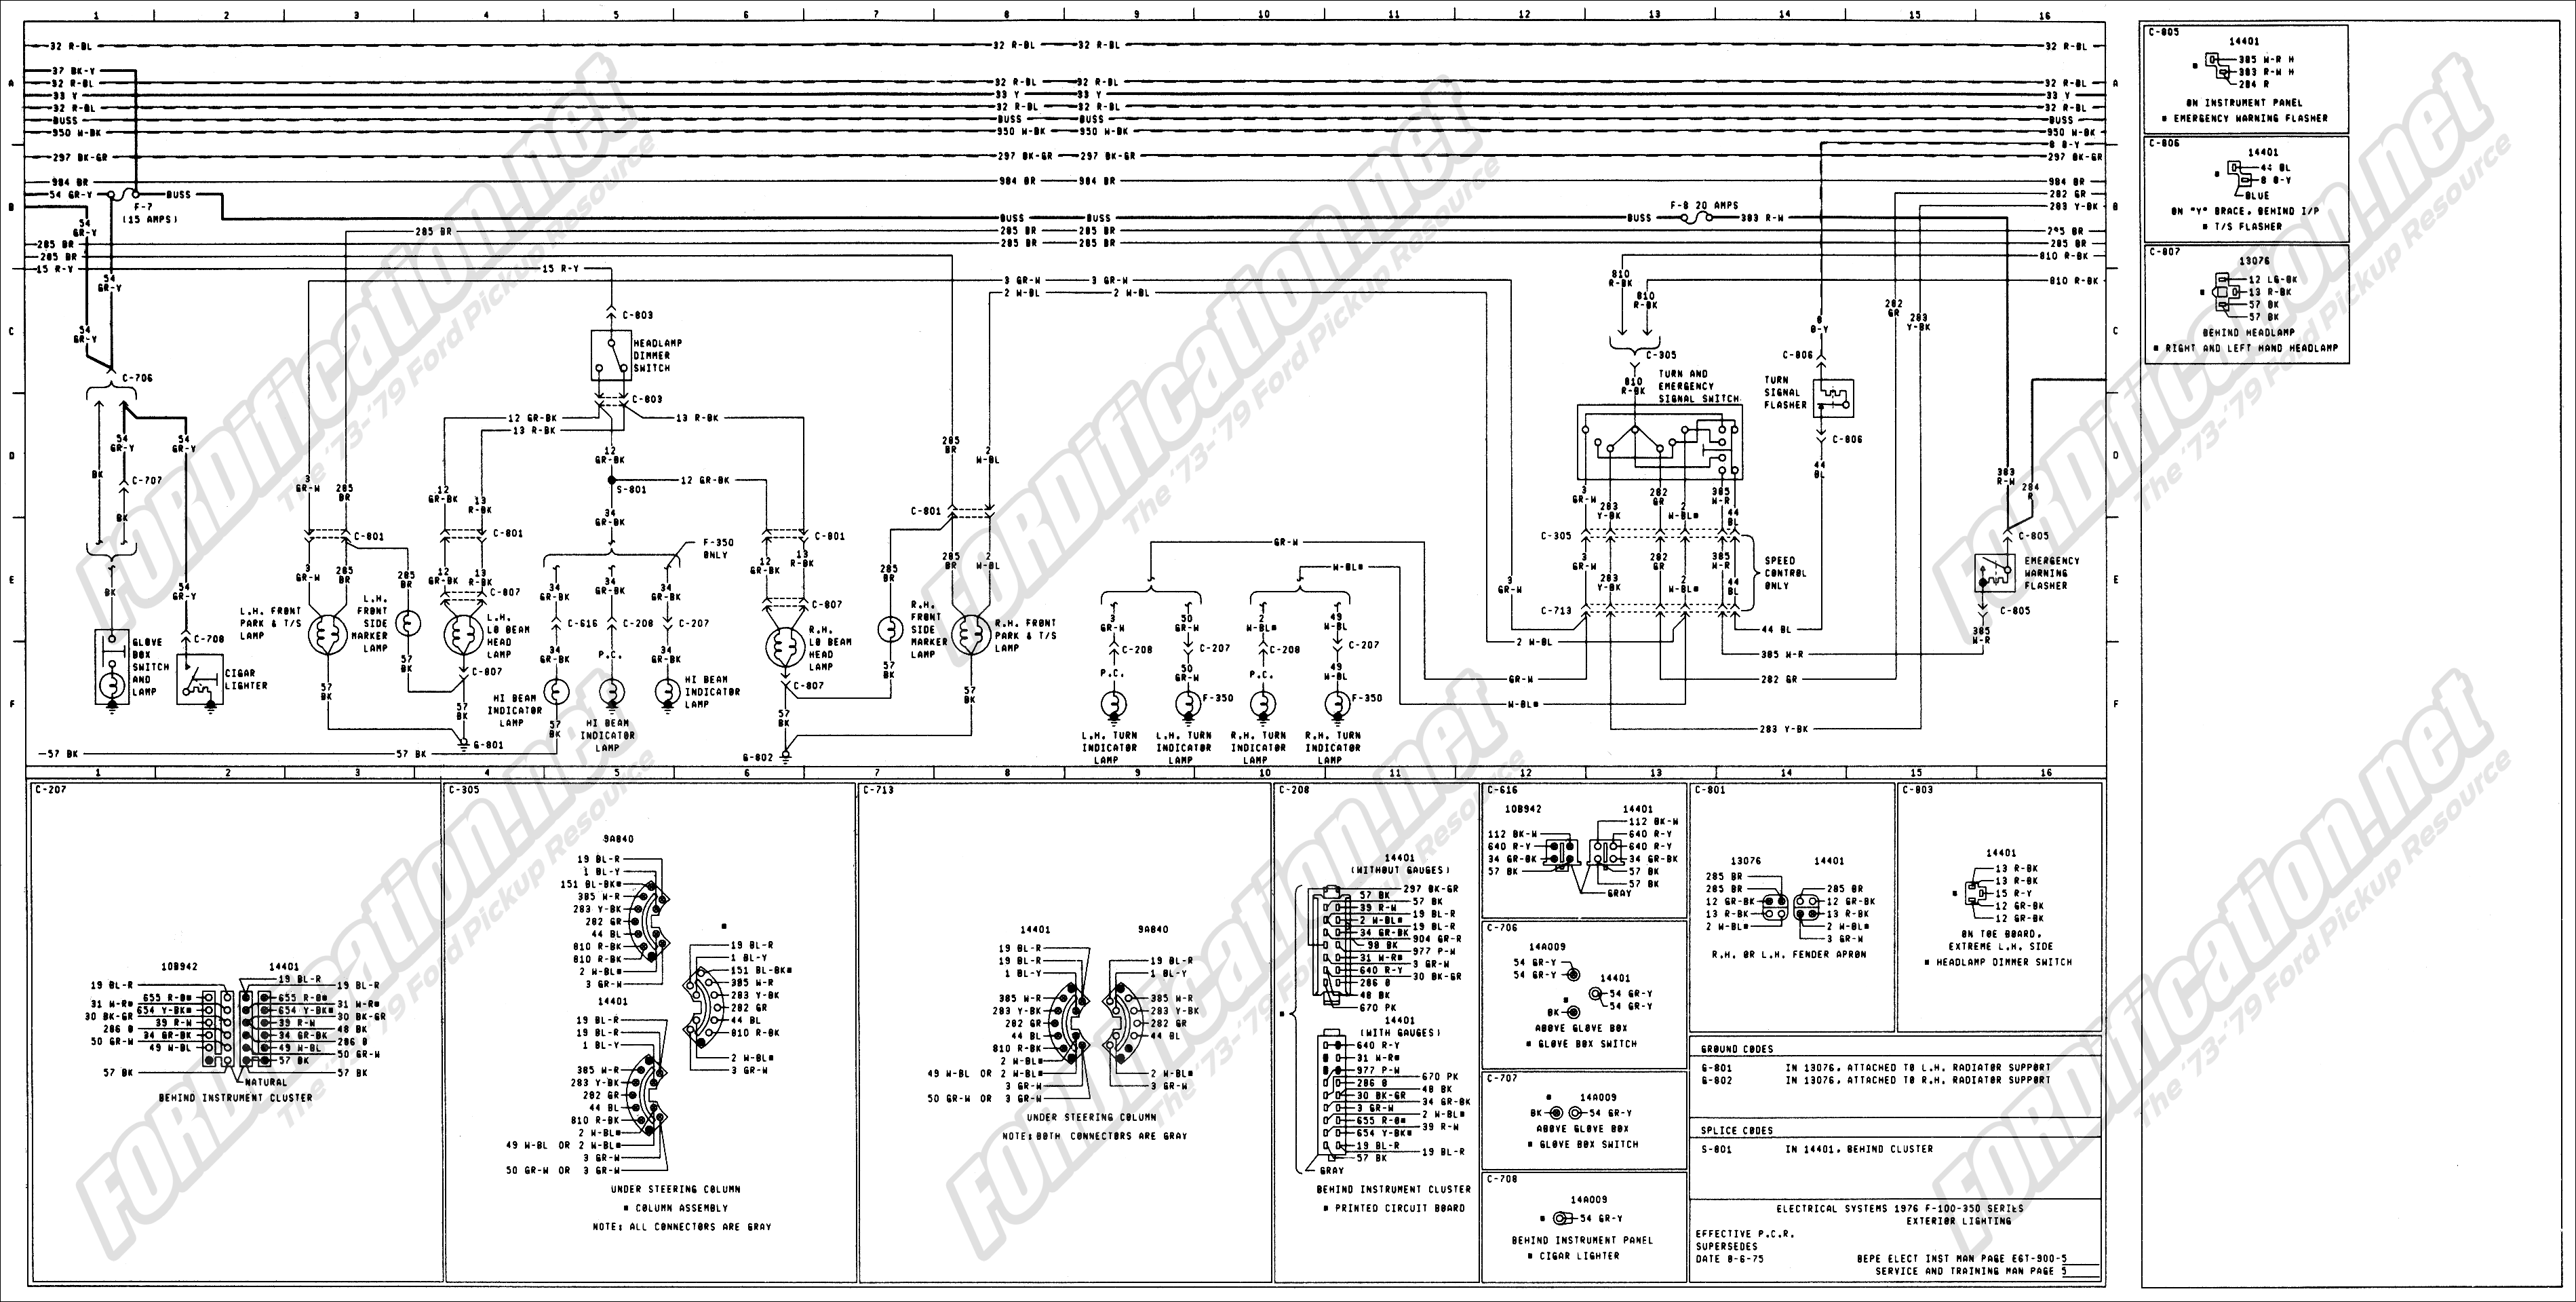 WRG-4274] Draeger Interlock Wiring Diagram on